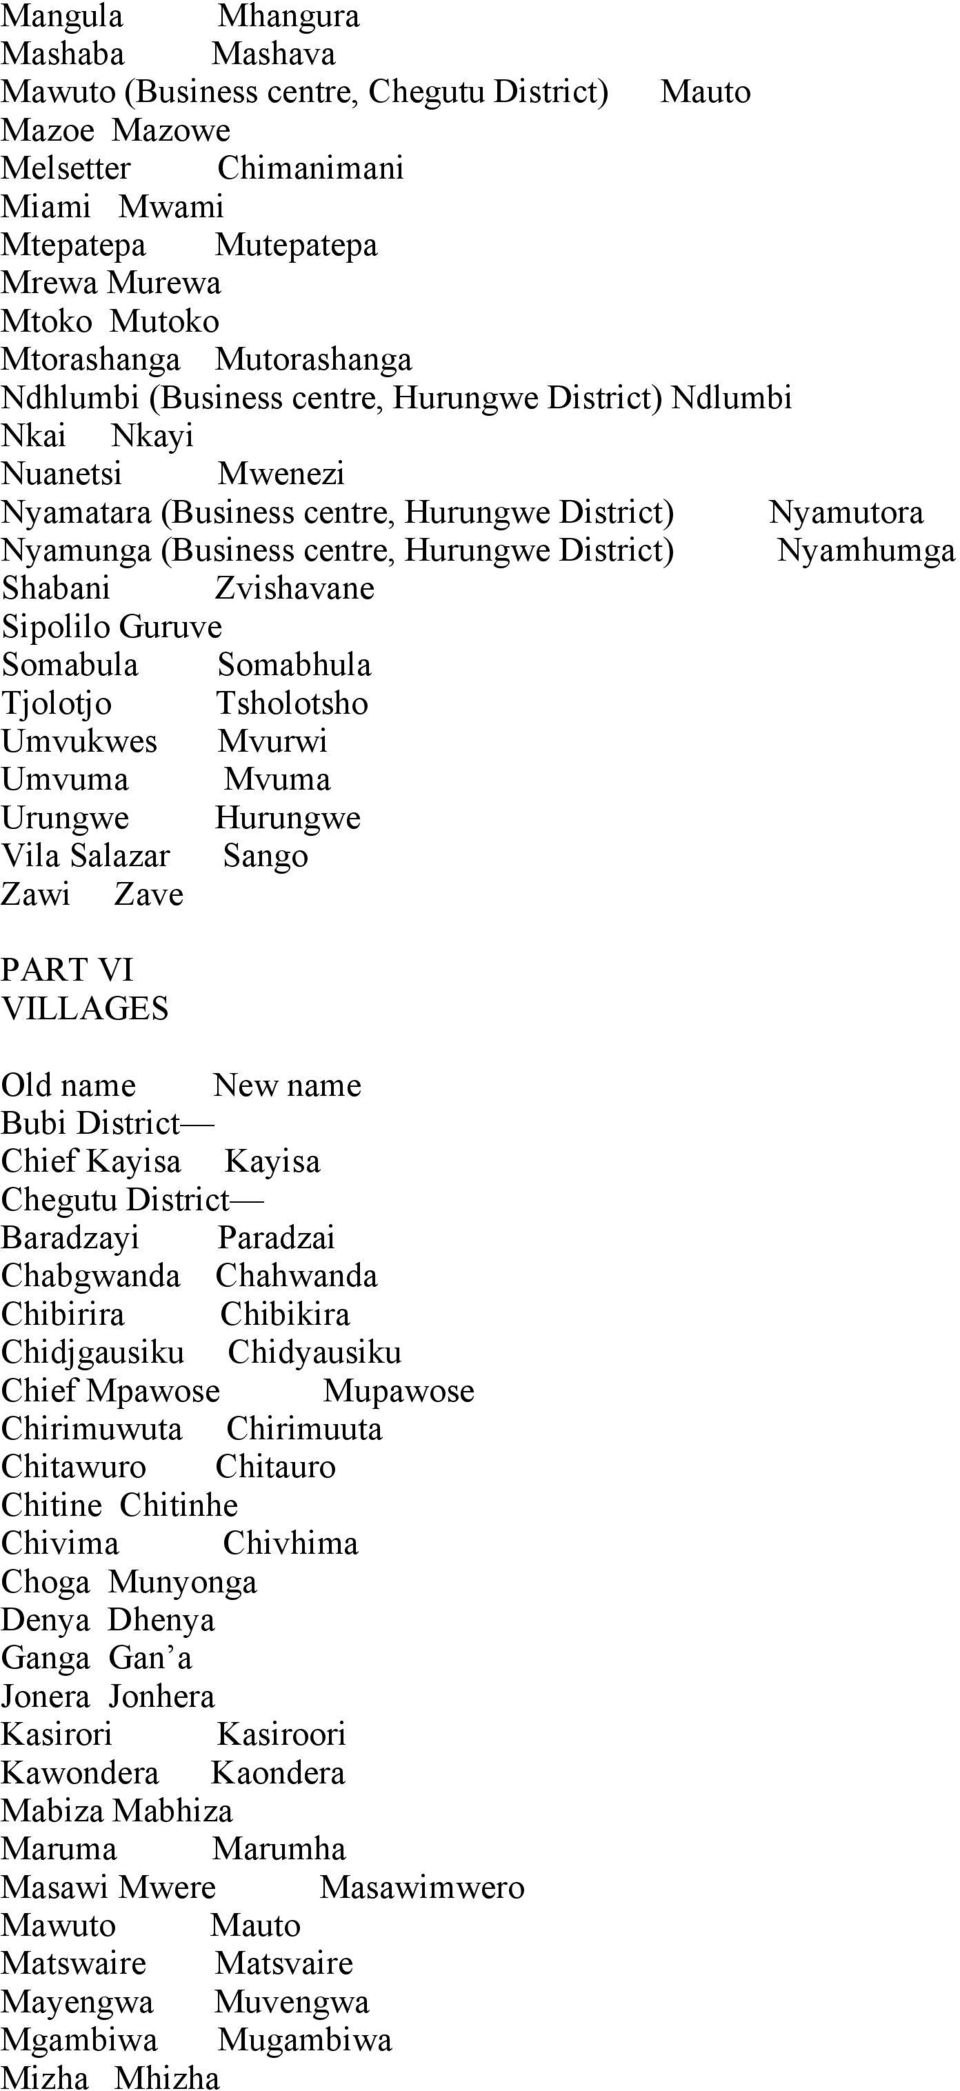 Nyamhumga Shabani Zvishavane Sipolilo Guruve Somabula Somabhula Tjolotjo Tsholotsho Umvukwes Mvurwi Umvuma Mvuma Urungwe Hurungwe Vila Salazar Sango Zawi Zave PART VI VILLAGES Bubi District Chief